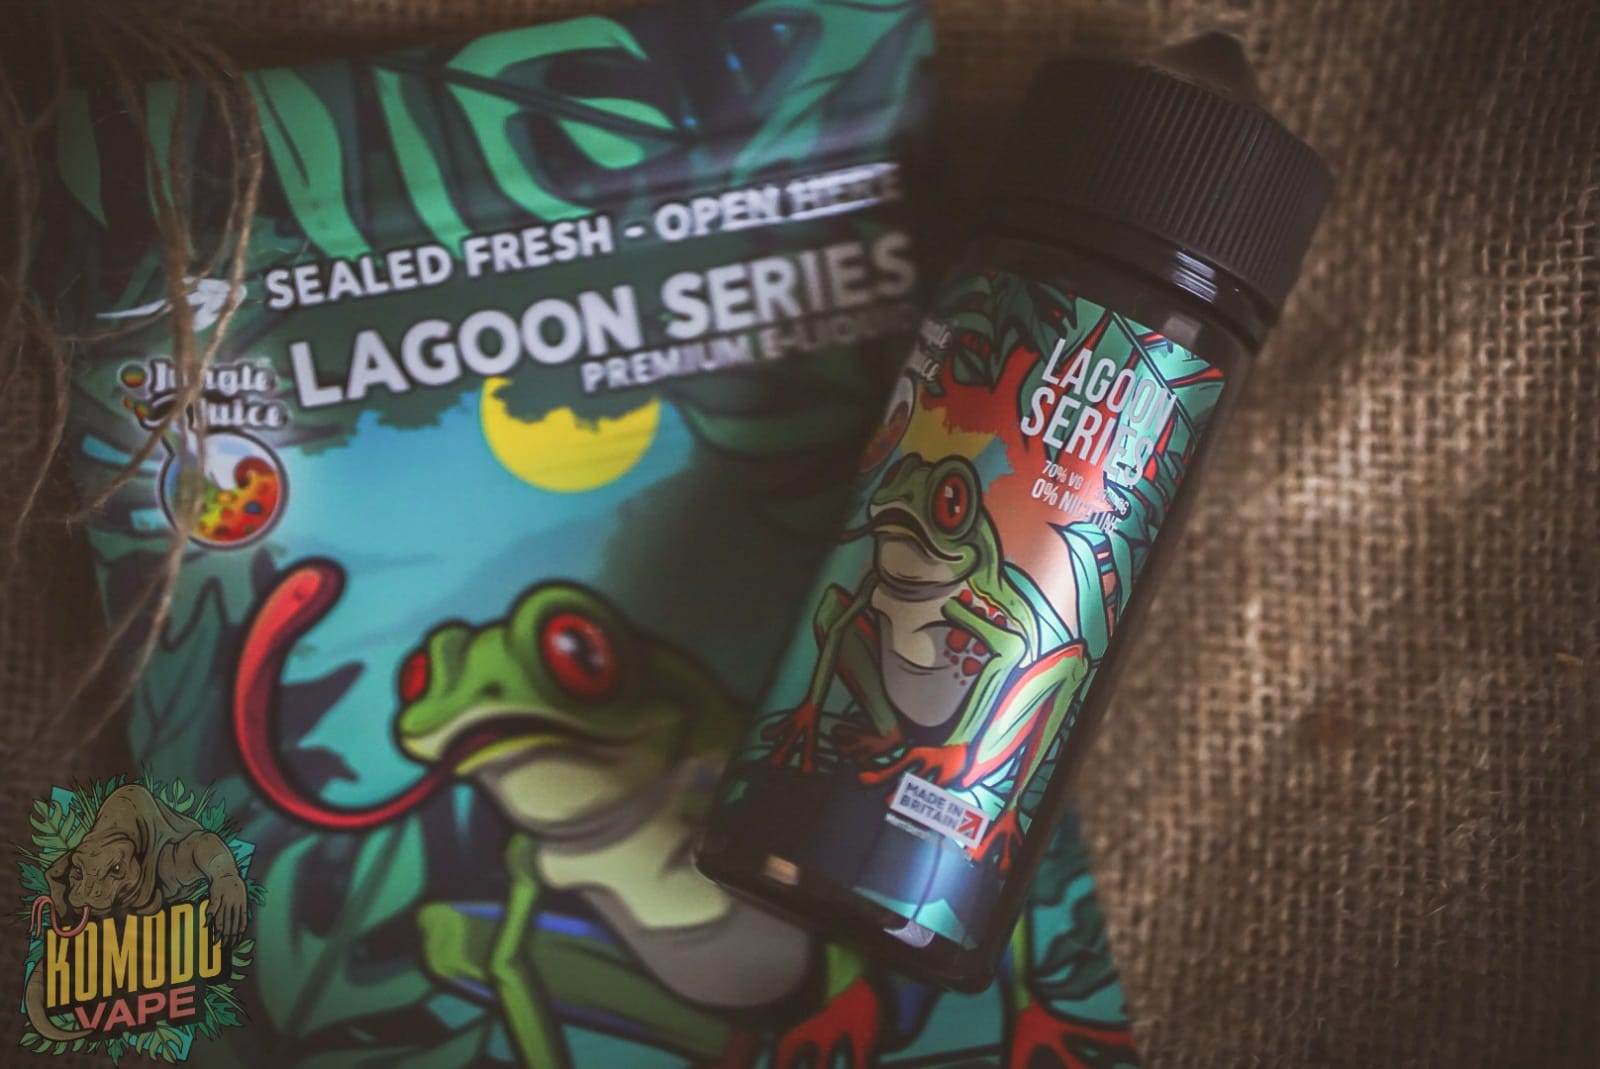 ECigClick - Jungle Juice Lagoon Series Review